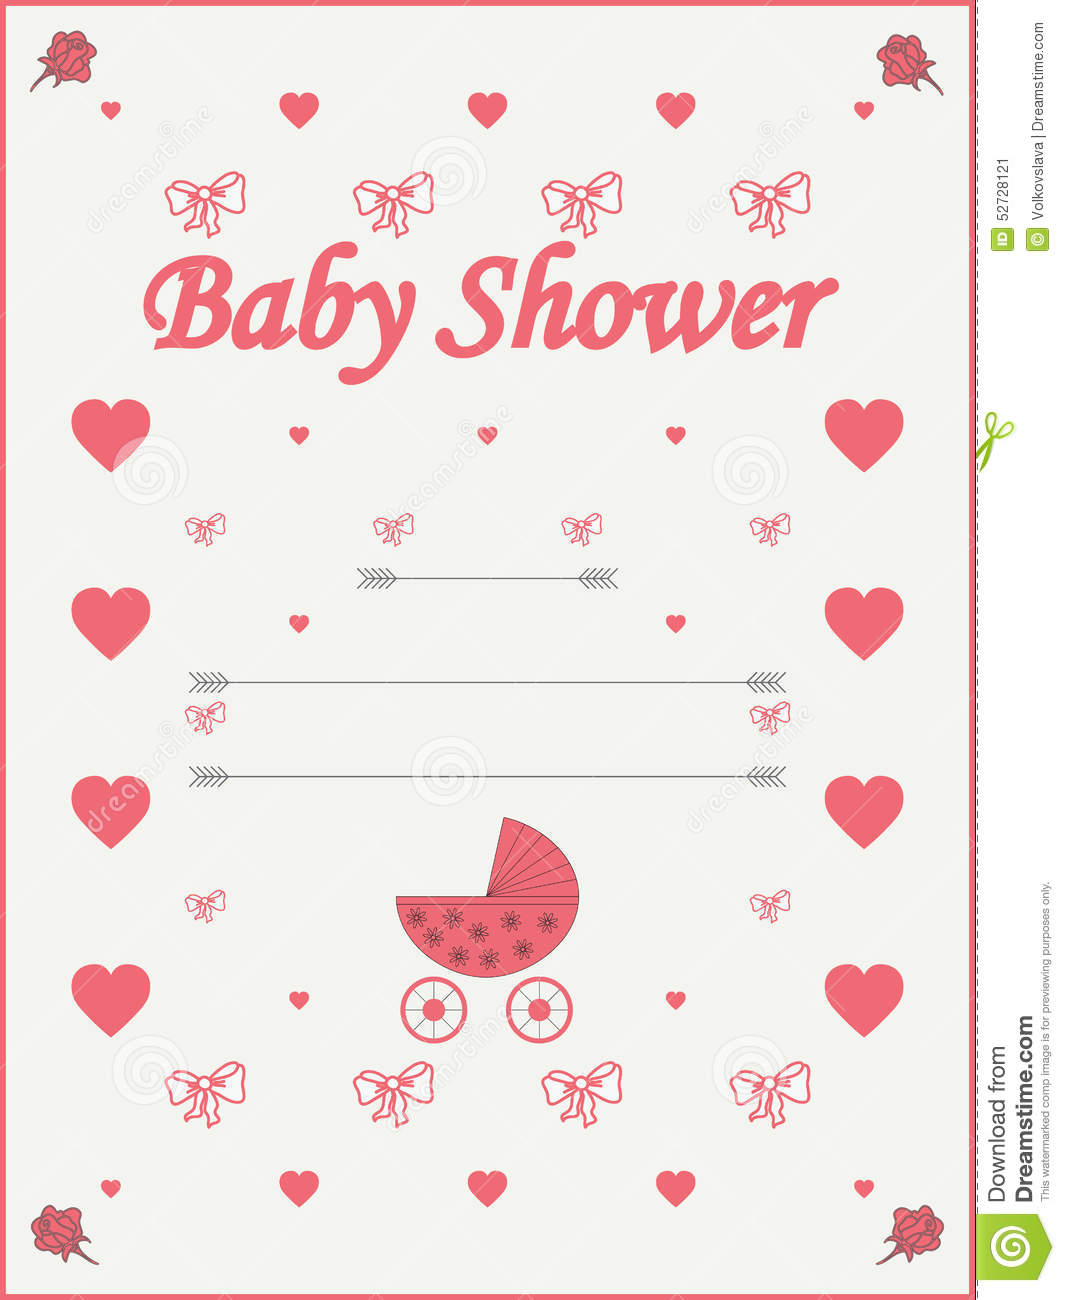 baby shower invitation template stock vector image 52728121